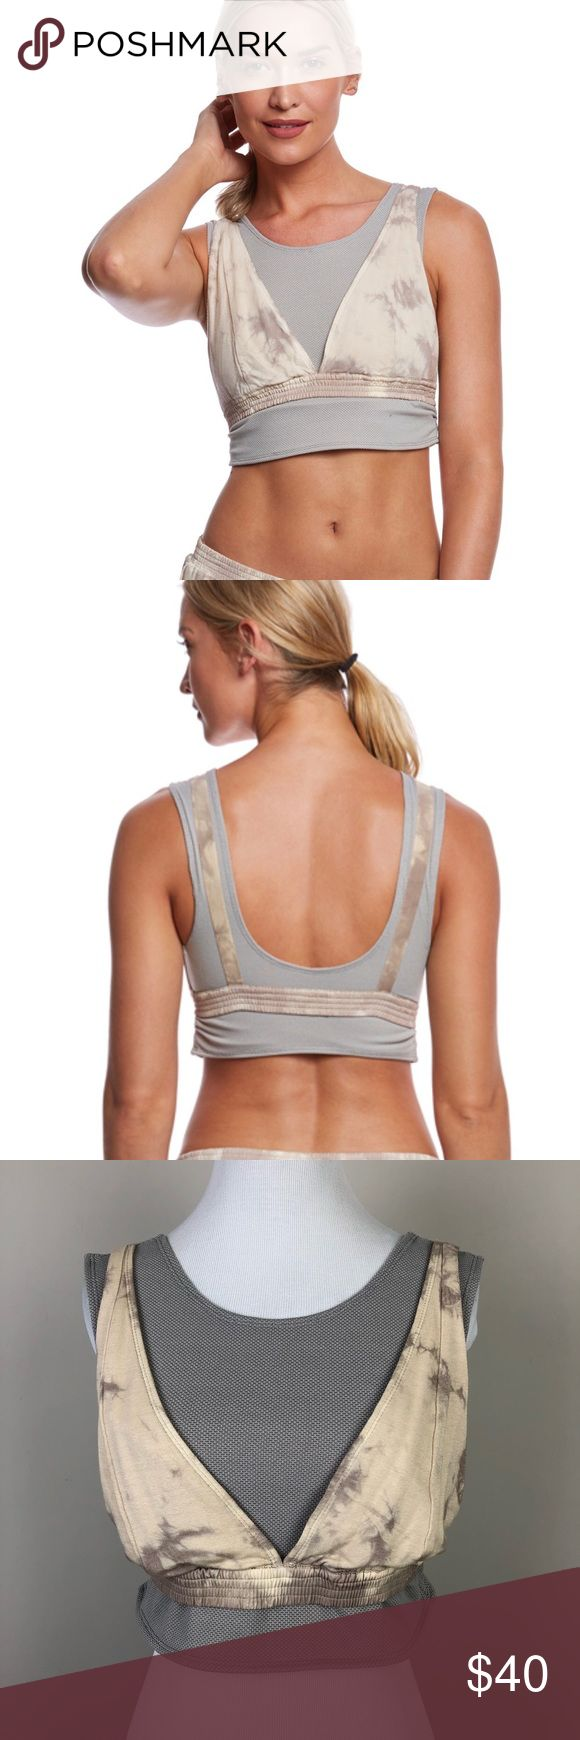 "Free People | Movement Oasis Camisole Bra Top New Cropped athletic bra top. Layered look. Great for yoga, pilates, barre, ballet, dance, etc. Peach combo.  ▪️Pit to Pit: 15"" ▪️Length: 14"" ▪️Condition: NWT. New.   ▫️HH51 Free People Tops Crop Tops"